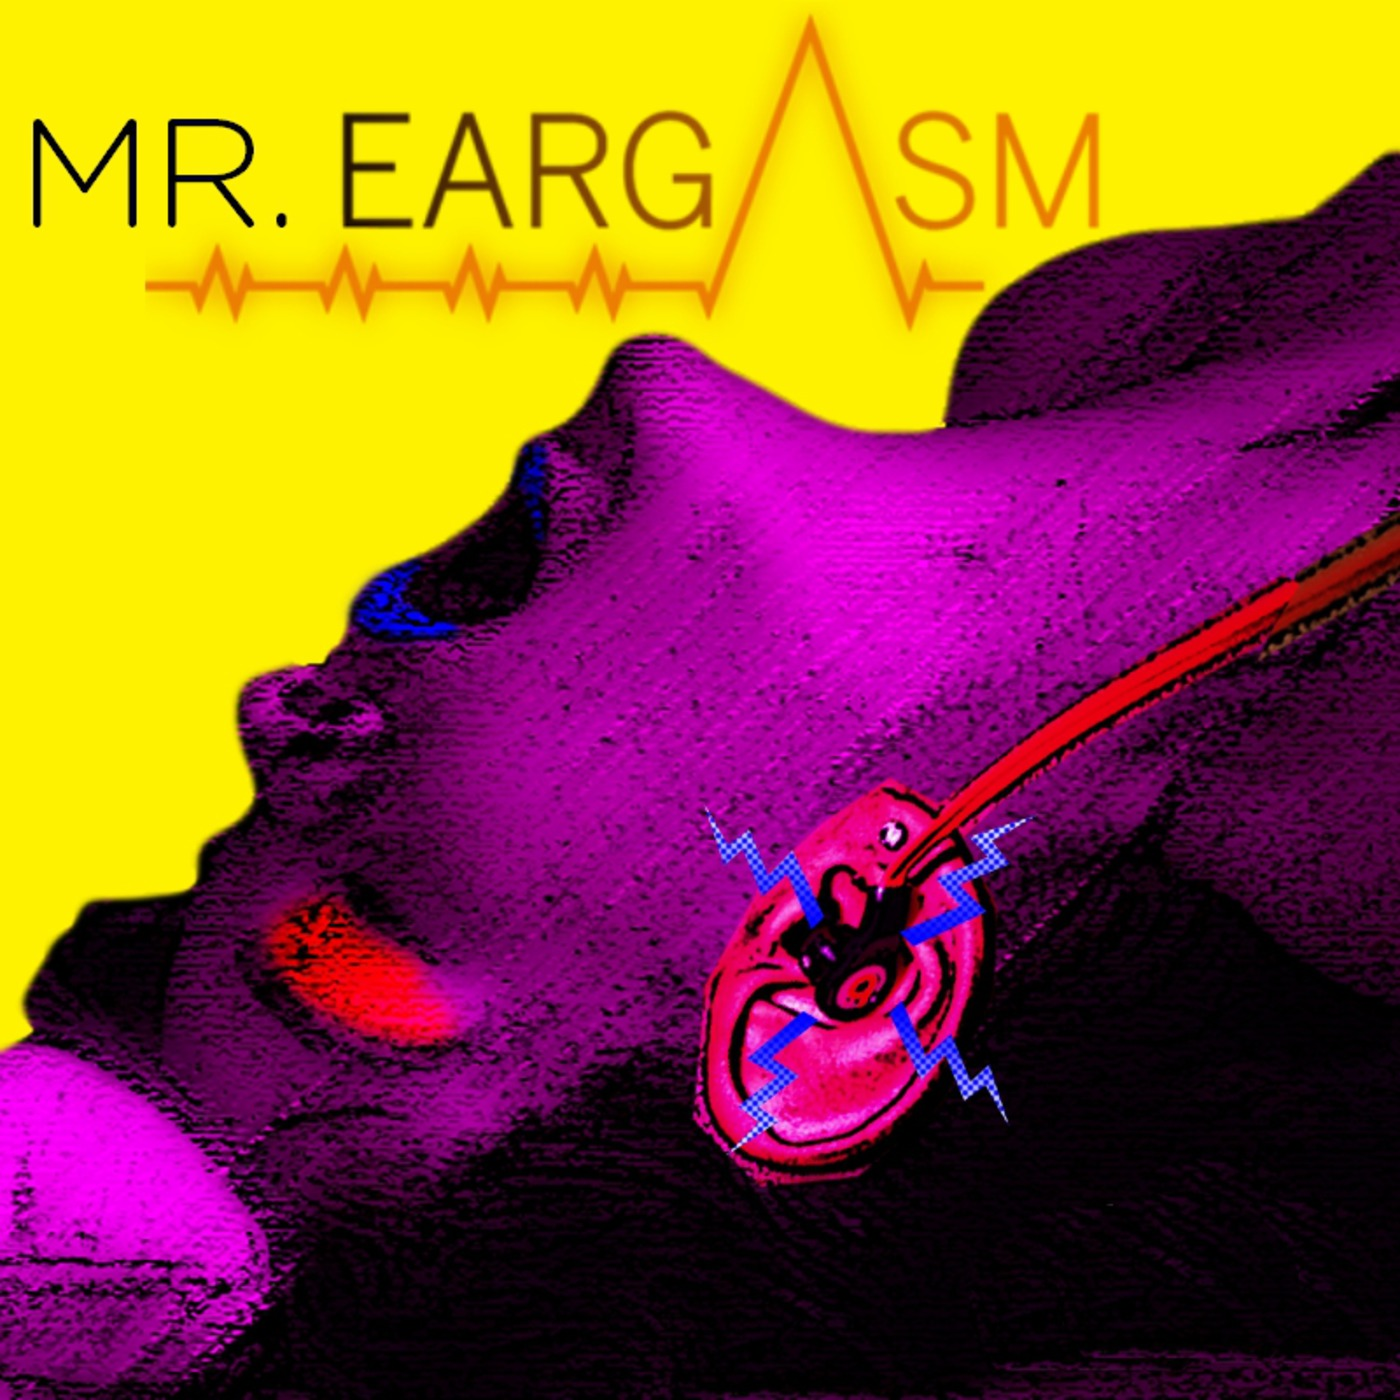 Mr. Eargasm's Podcast